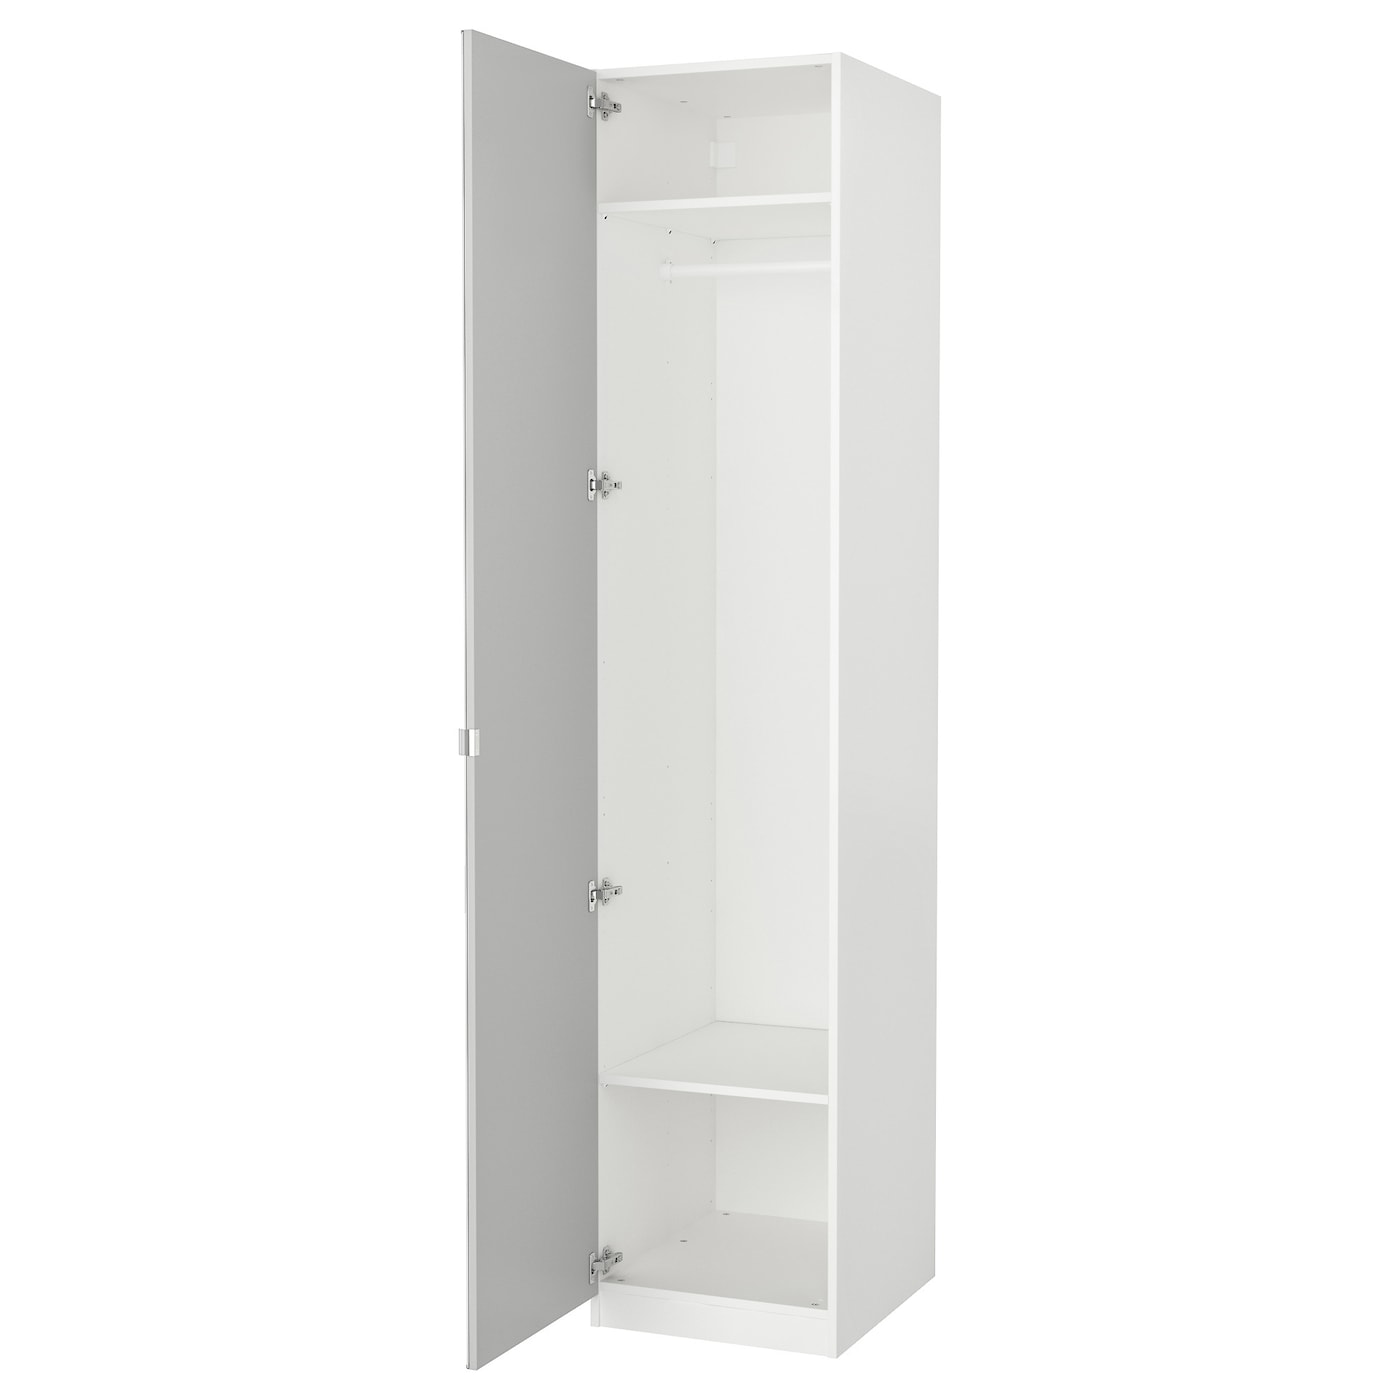 Pax wardrobe white vikedal mirror glass 50x60x236 cm ikea for Porte 60 x 30